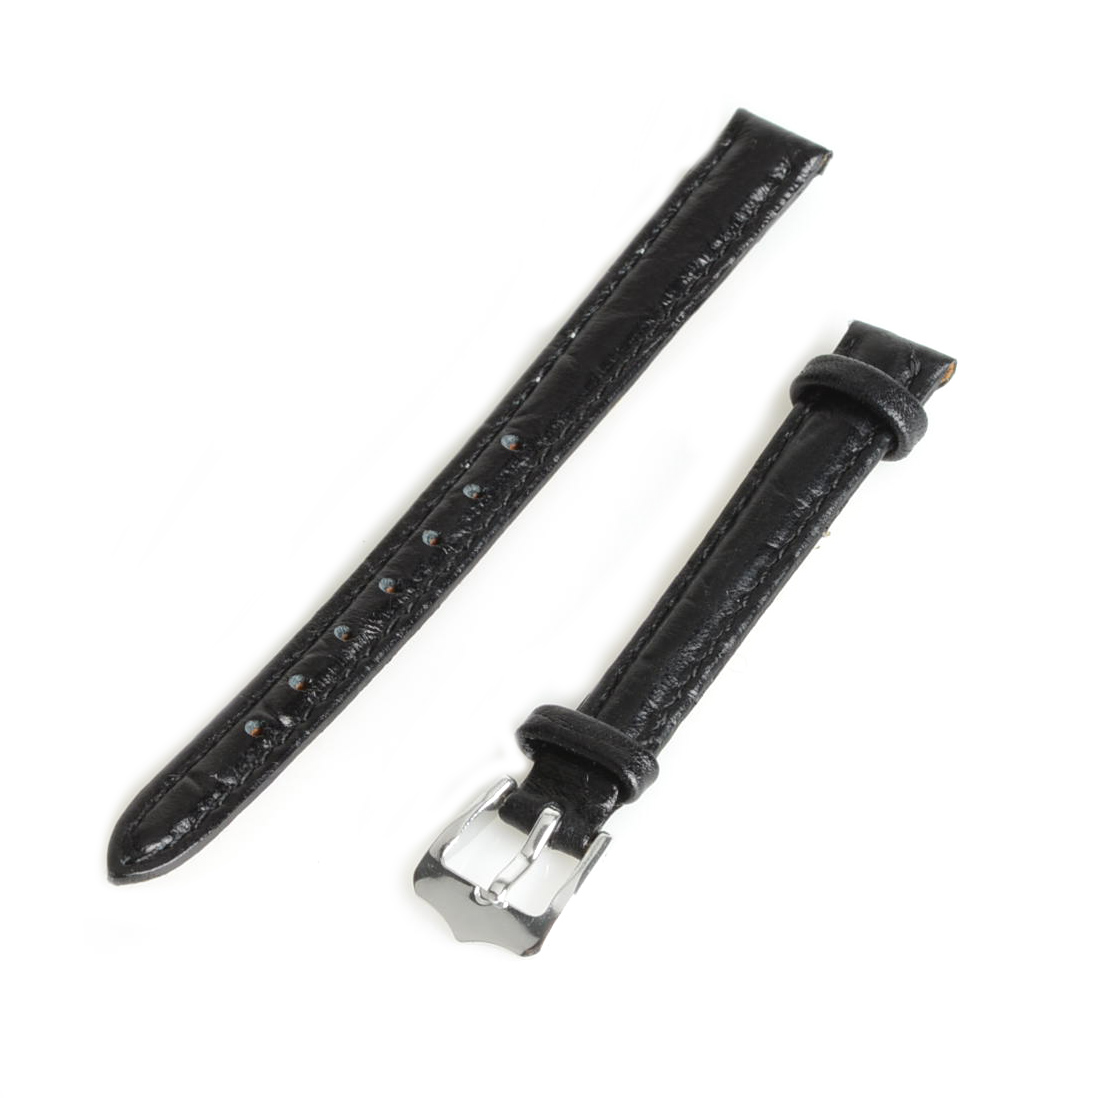 Hot Sell 2017 New Brand 10mm Genuine Leather Replacement Watch Band Strap Watchband Black SB0564